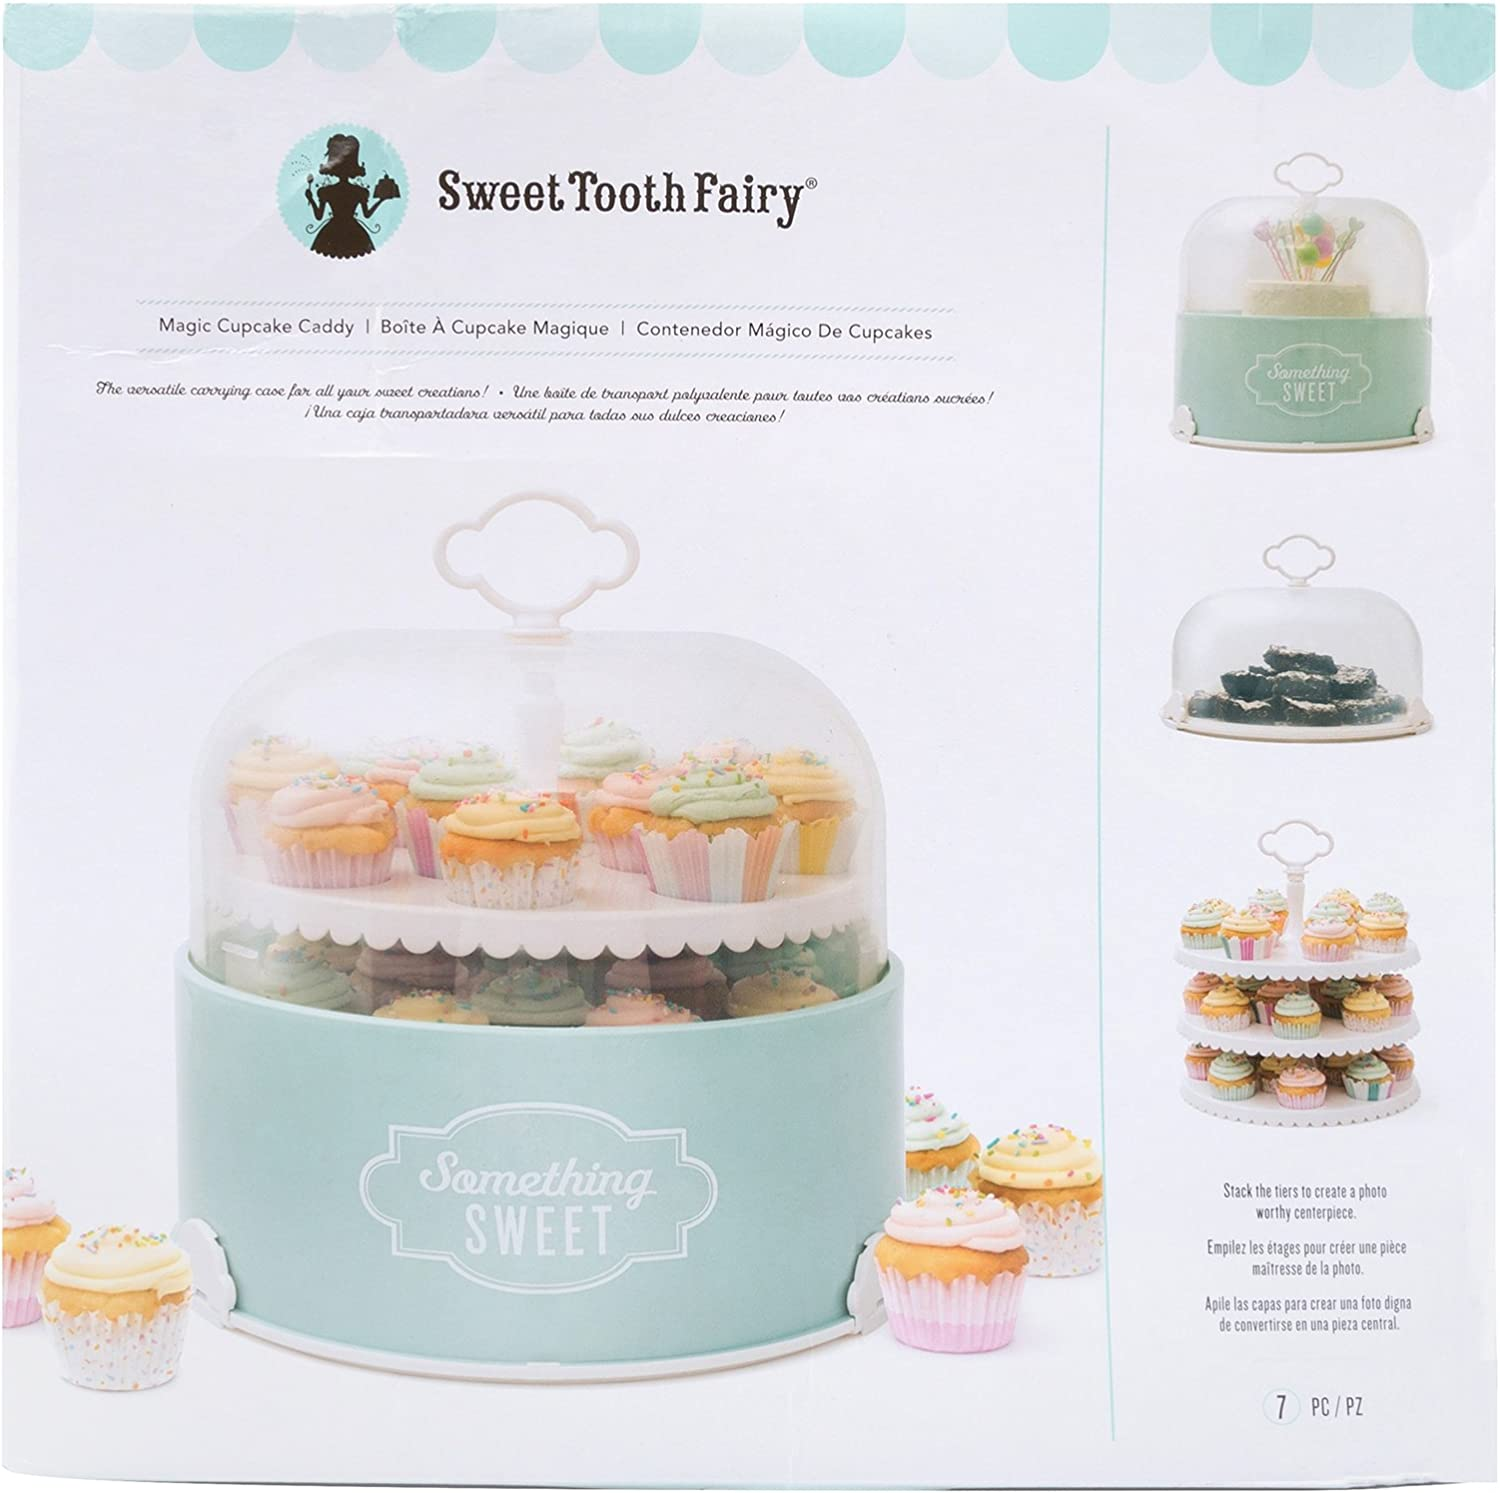 Sweet Tooth Fairy sale 320093 Cupcake Magic Attention brand Other Caddy